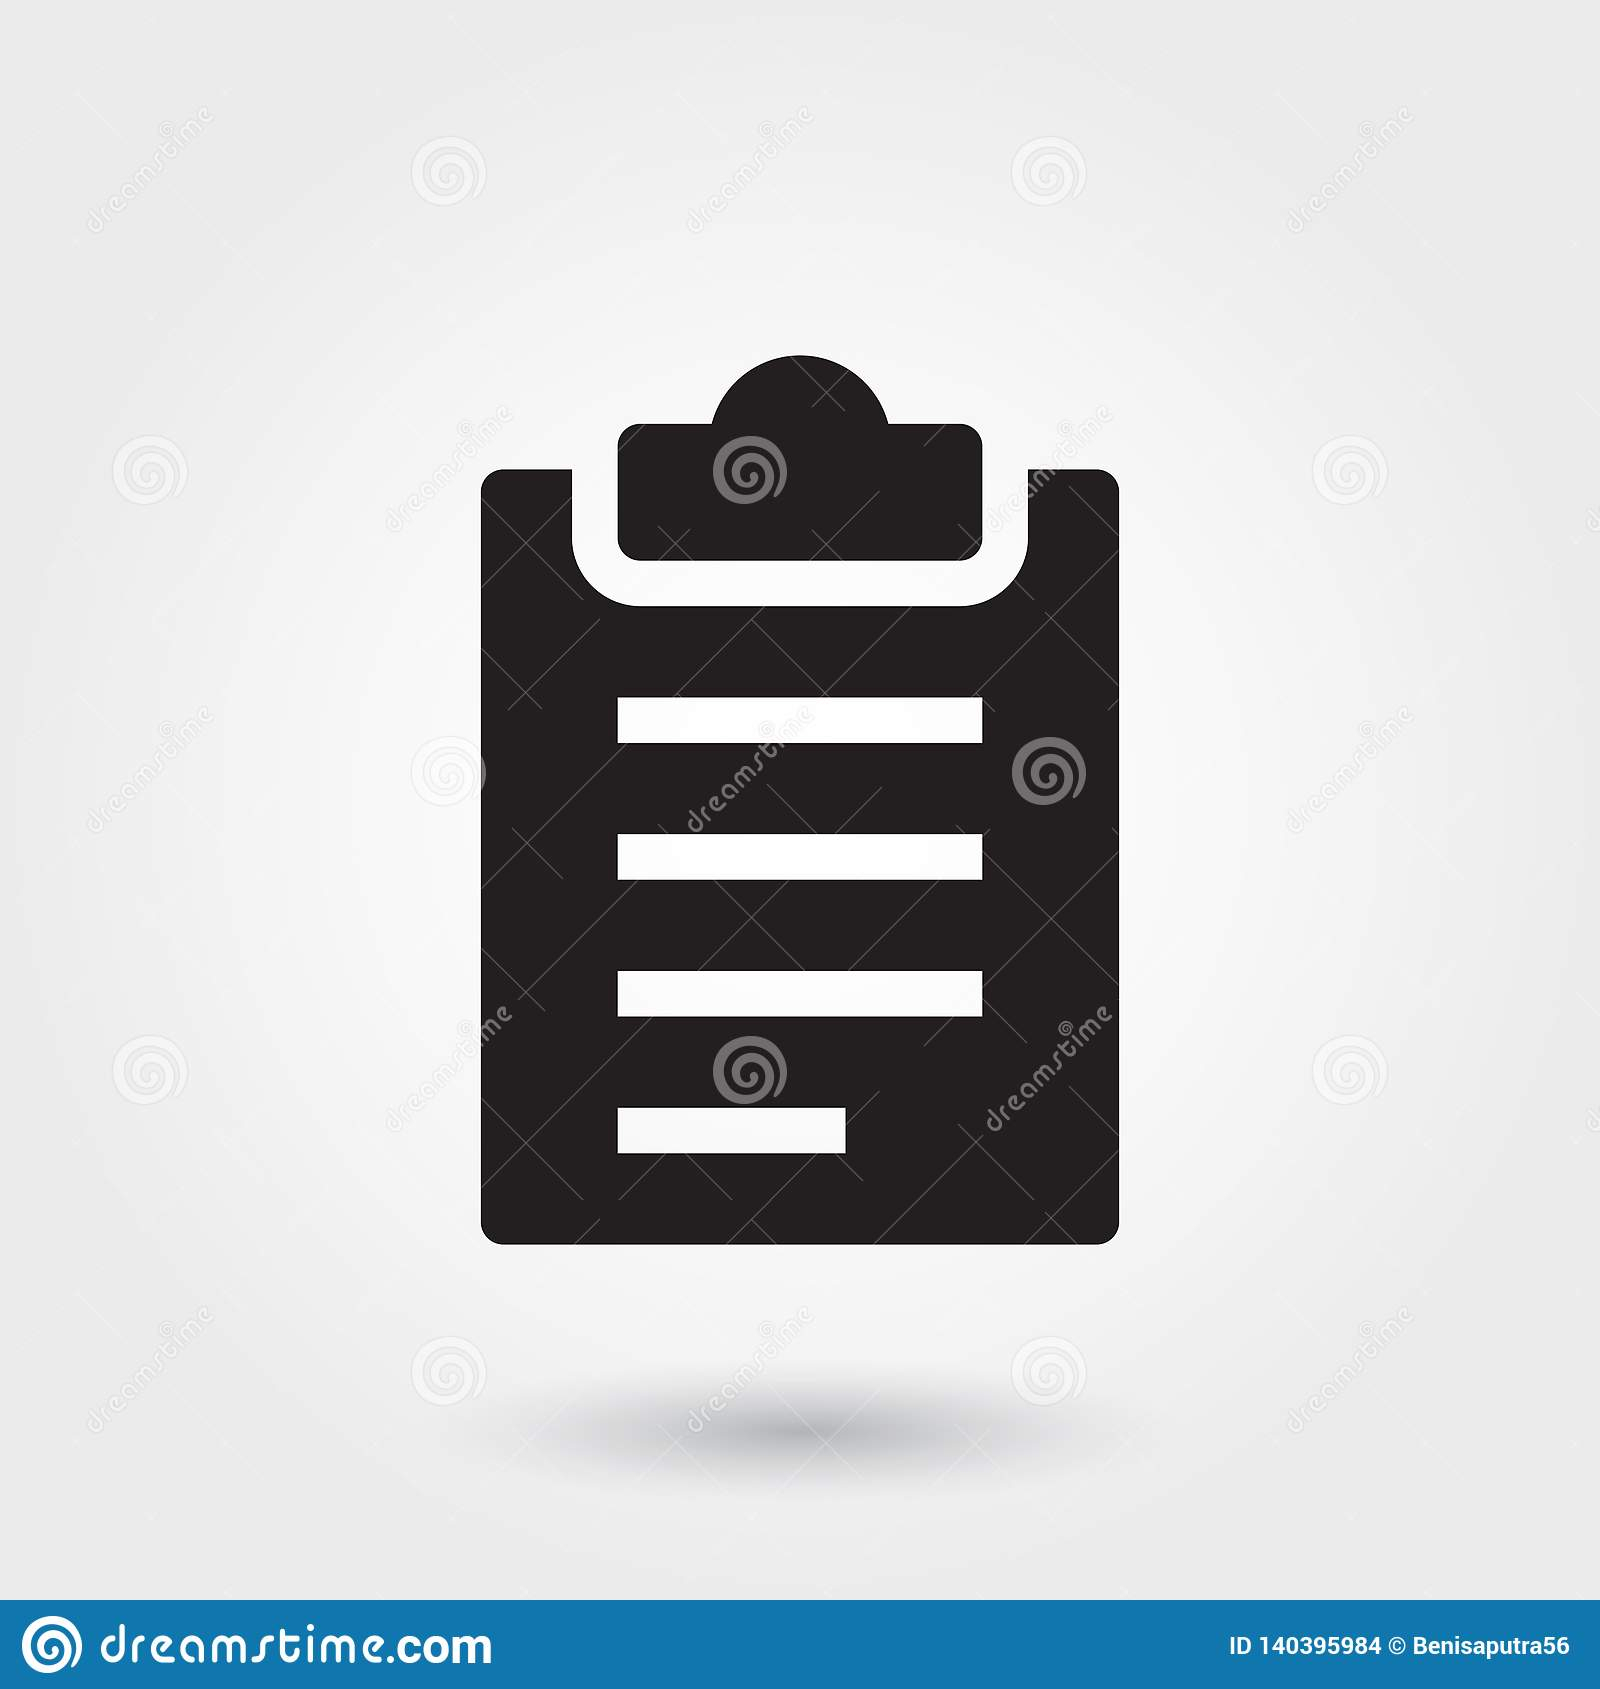 Vector, Clipboard Glyph Icon For Any Purposes Perfect For